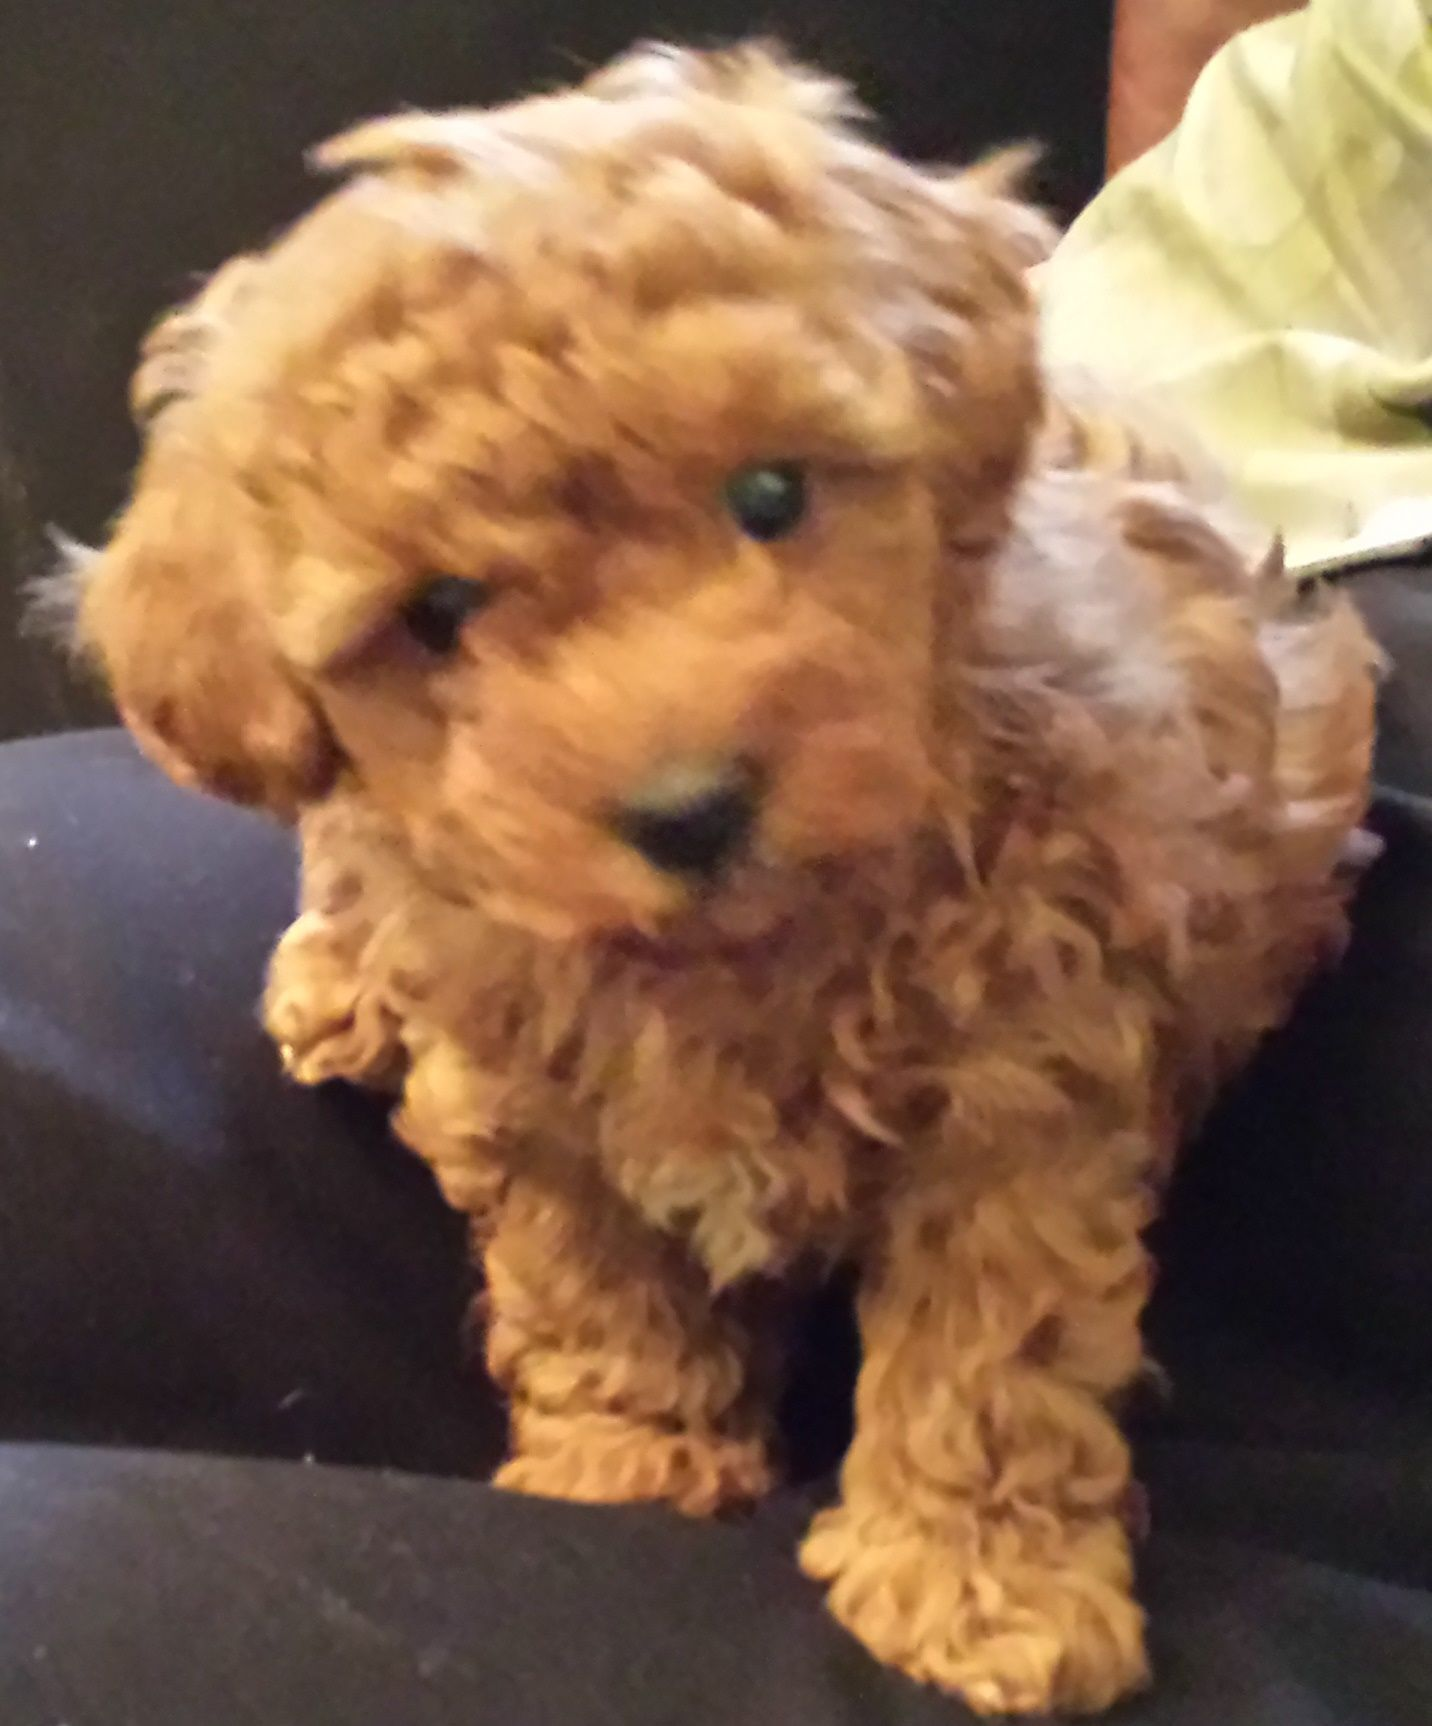 Poodle Pups Available Toy Poodles Toy Poodle Breeder Toy Poodles Uk Poodle Stud Dogs Tea Teacup Poodle Puppies Poodle Puppies For Sale Poodle Puppy